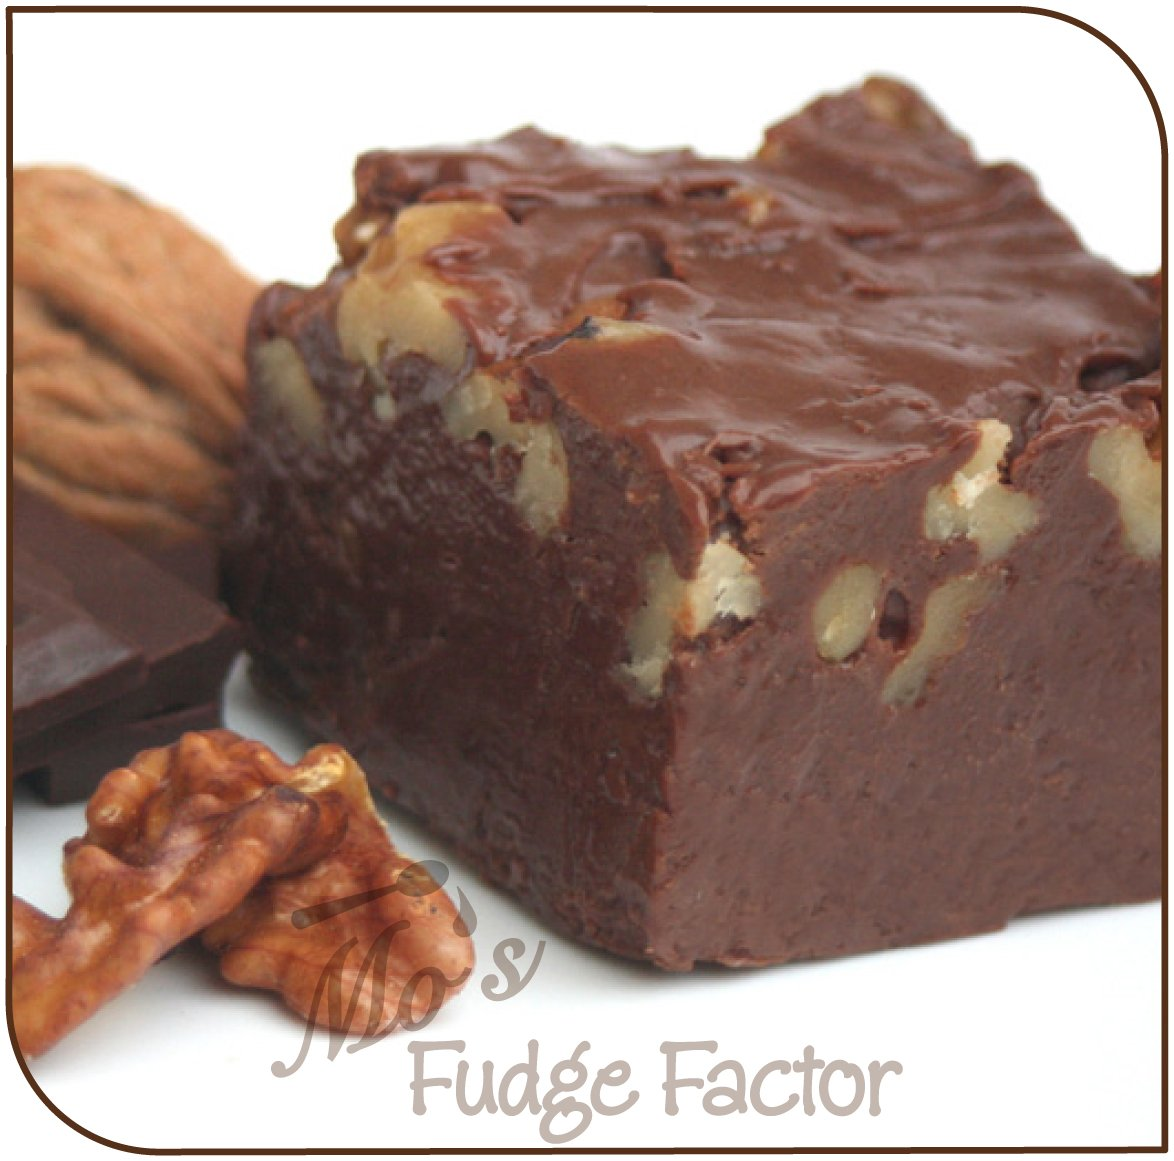 Mo's Fudge Factor, Chocolate Walnut Fudge 2 pounds